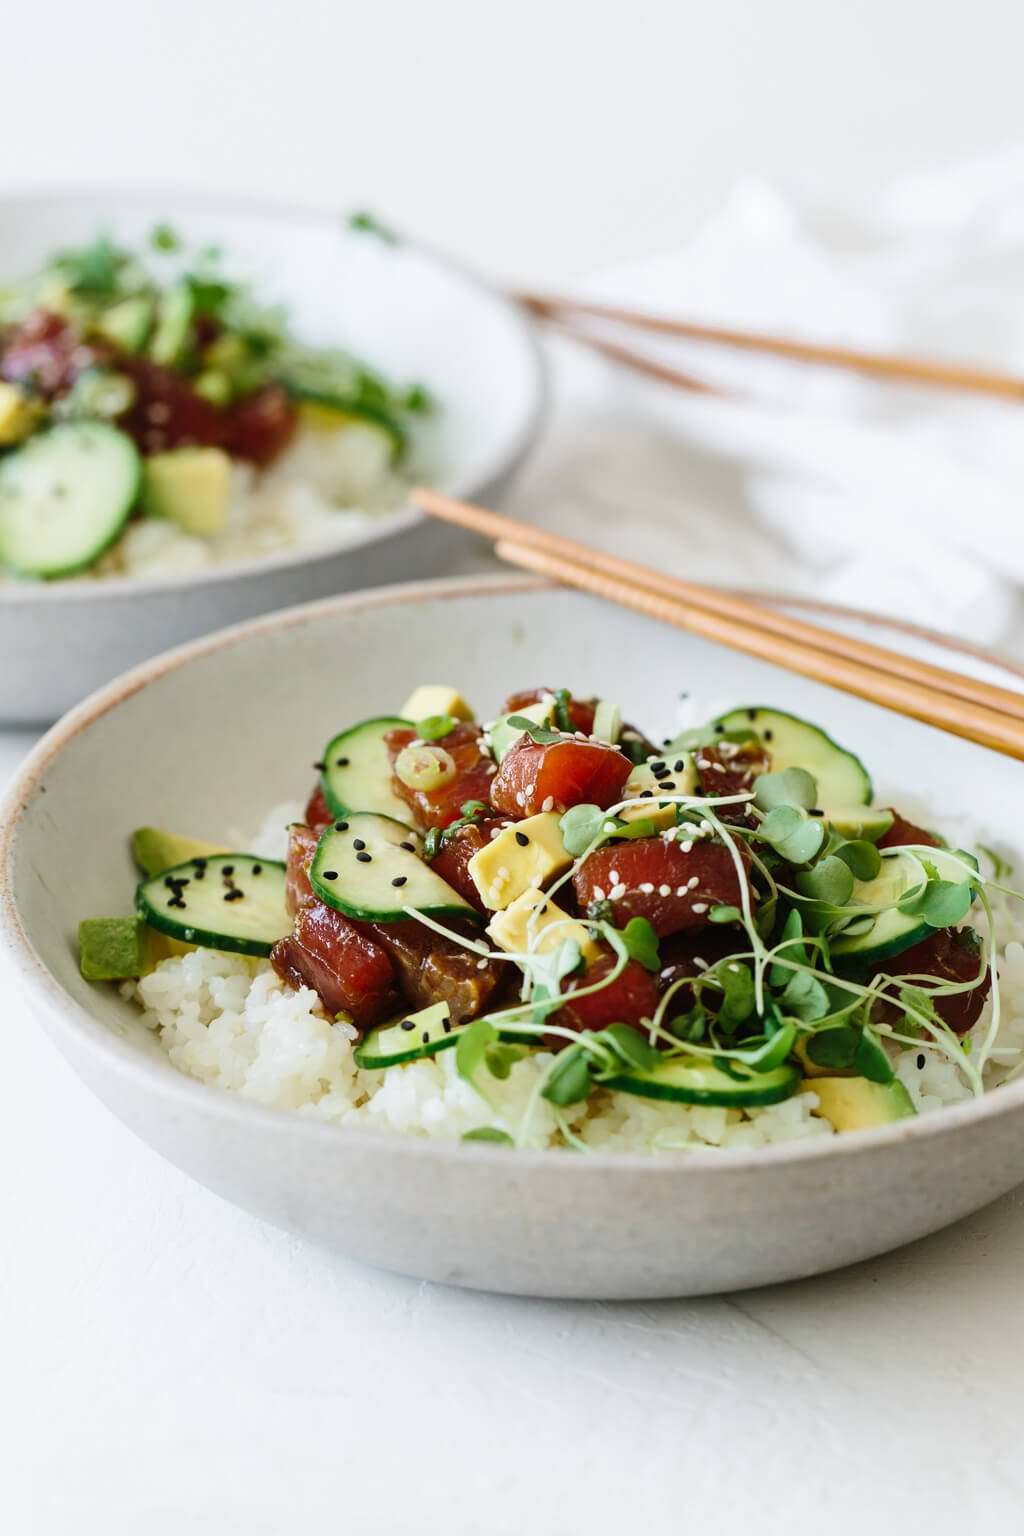 Ahi tuna poke bowl with chopsticks.